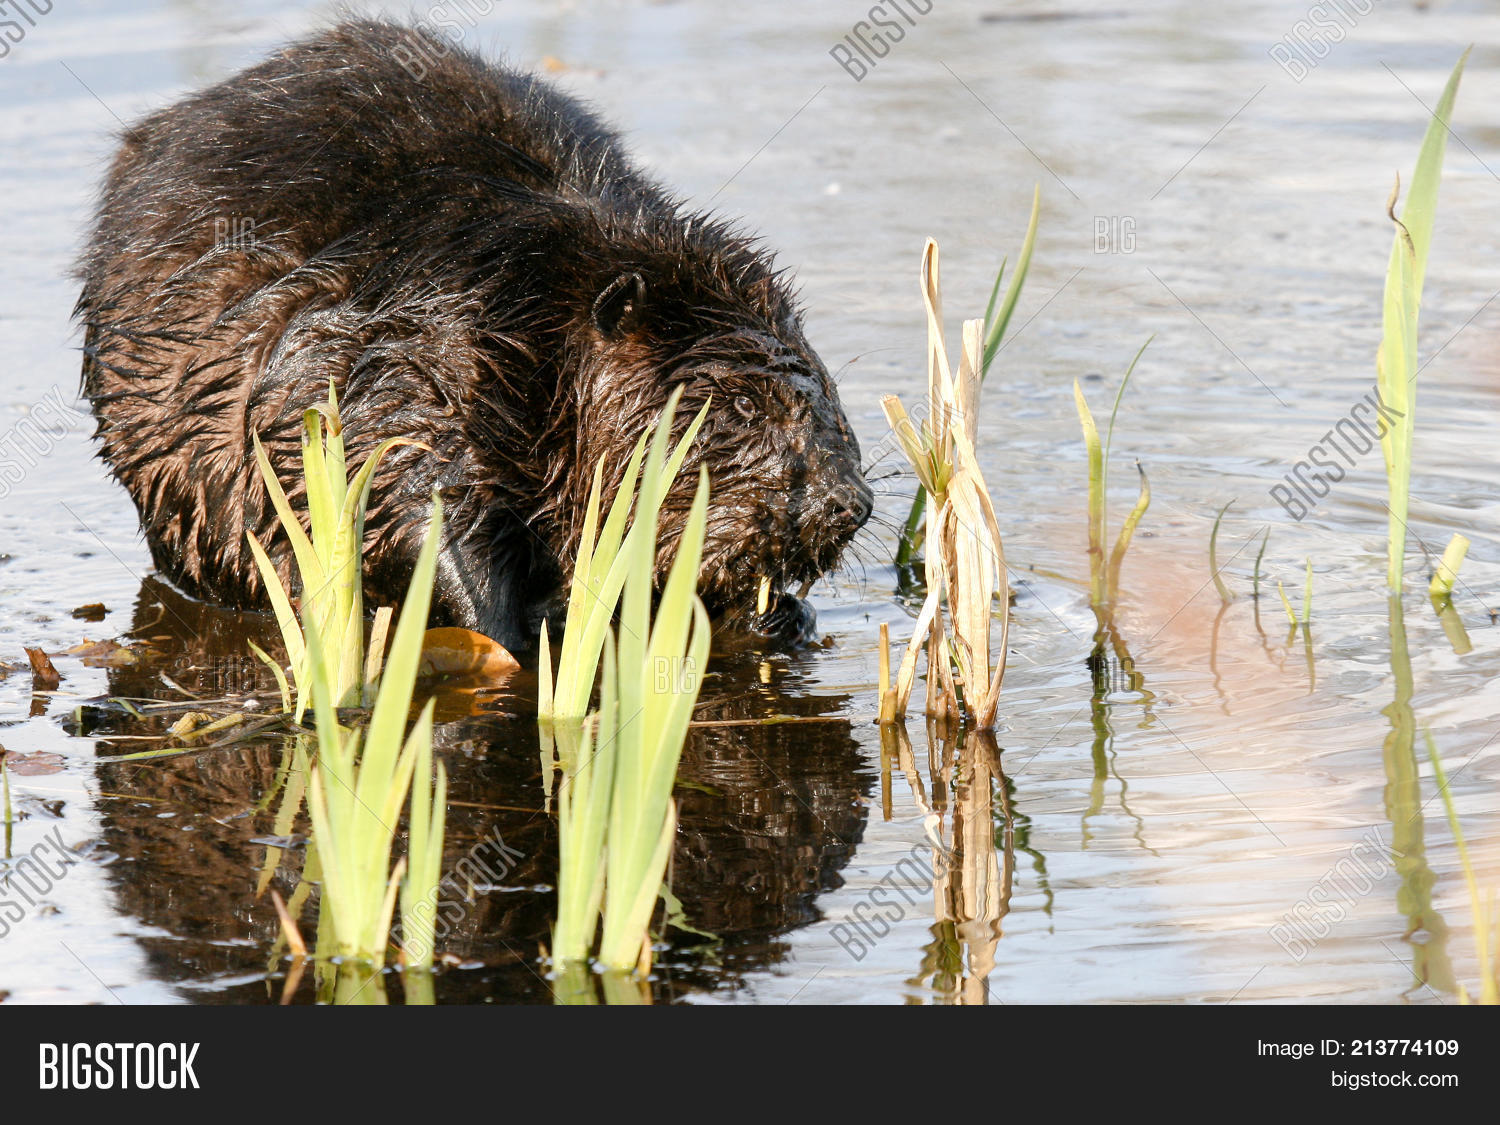 Beaver Munching On Image Photo Free Trial Bigstock